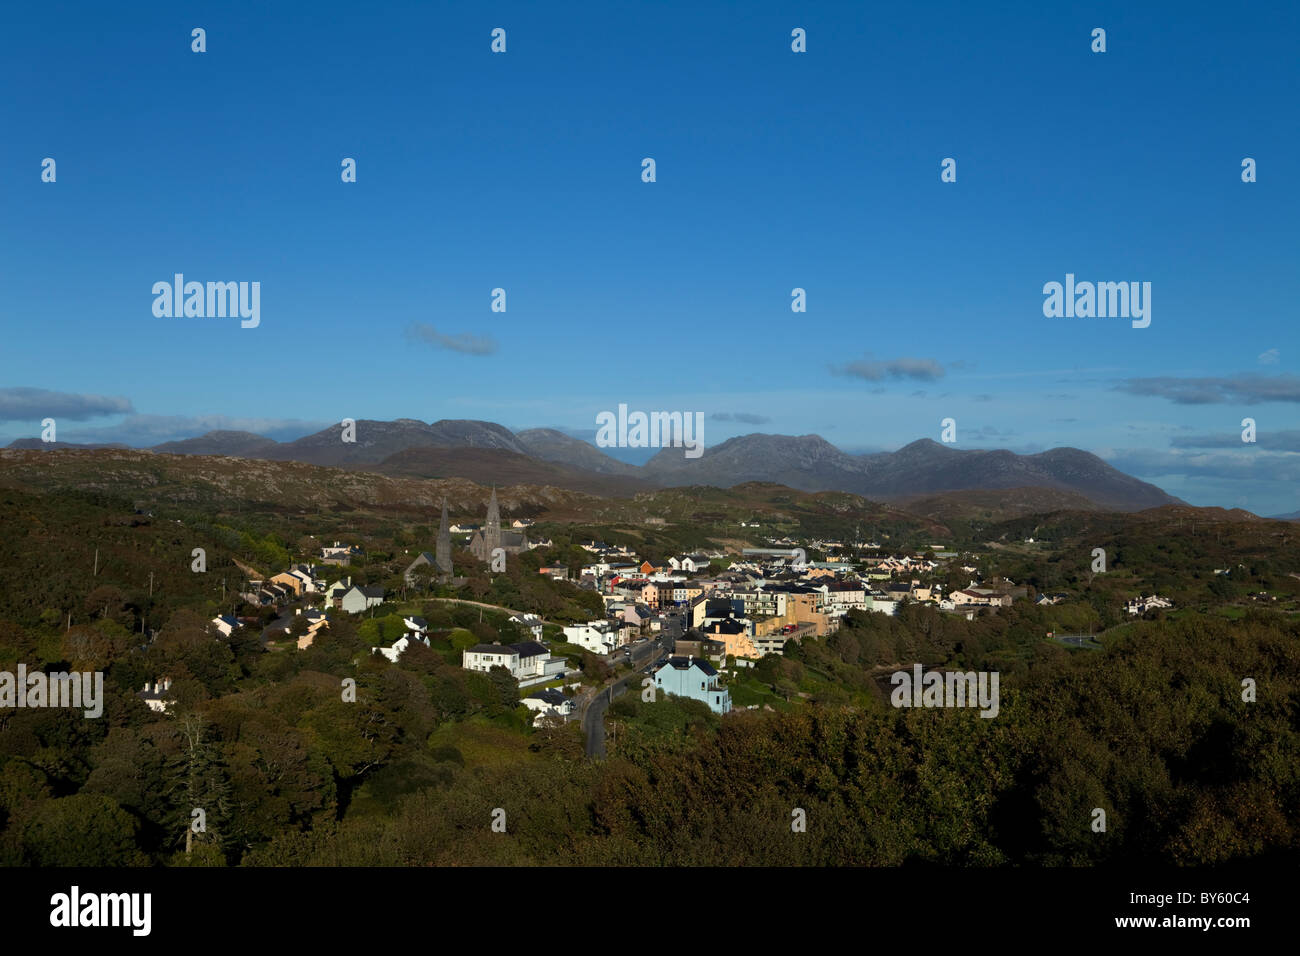 Clifden Town with the Distant 12 Pins Mountains, Connemara, County Galway, Ireland - Stock Image